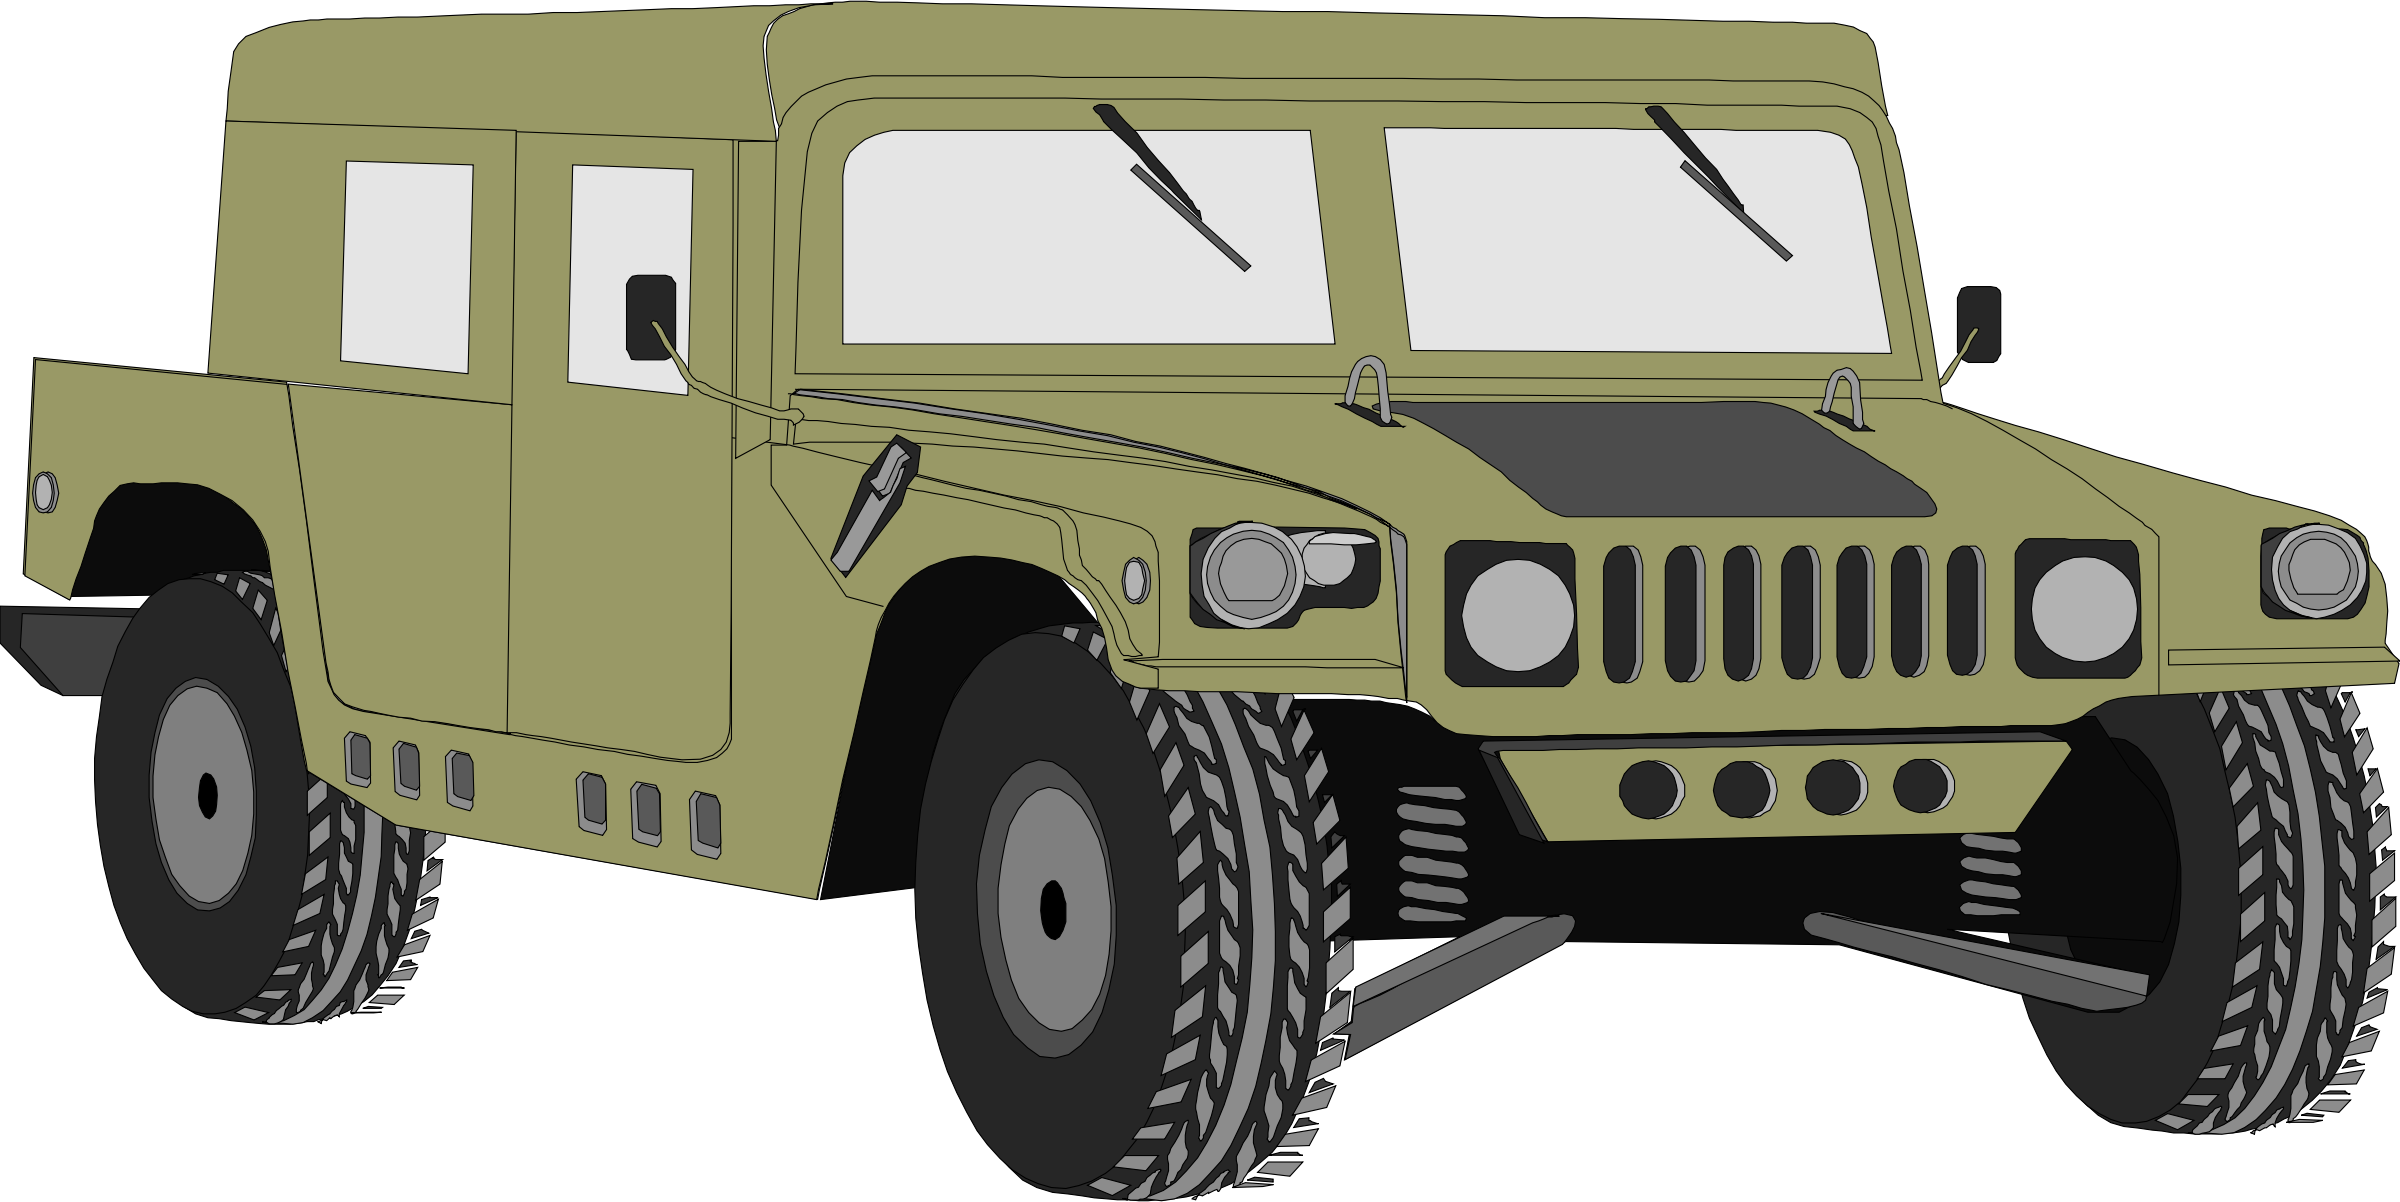 Humvee 04 by Anonymous